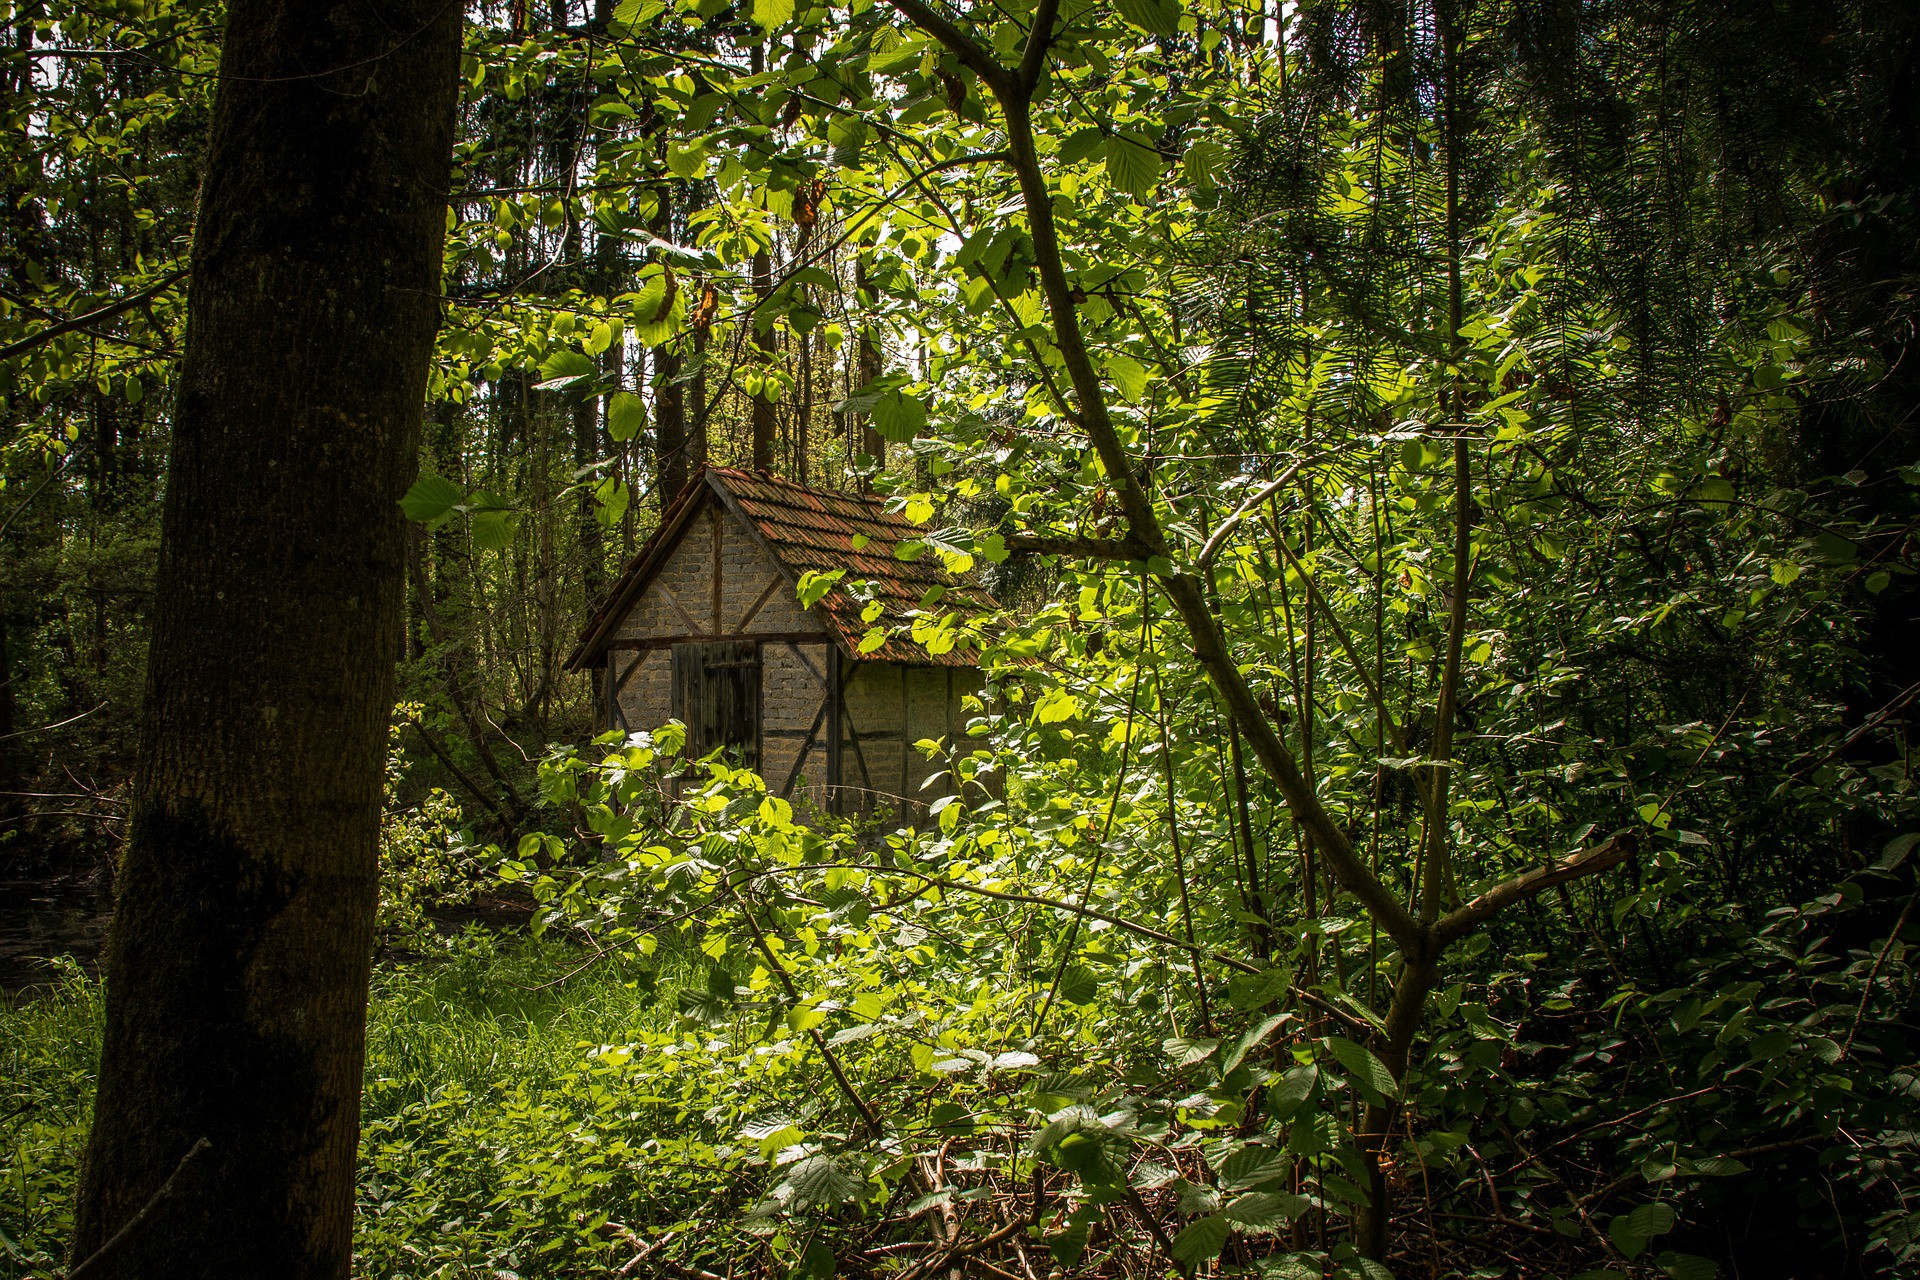 Cabin in the woods surrounded by green foliage